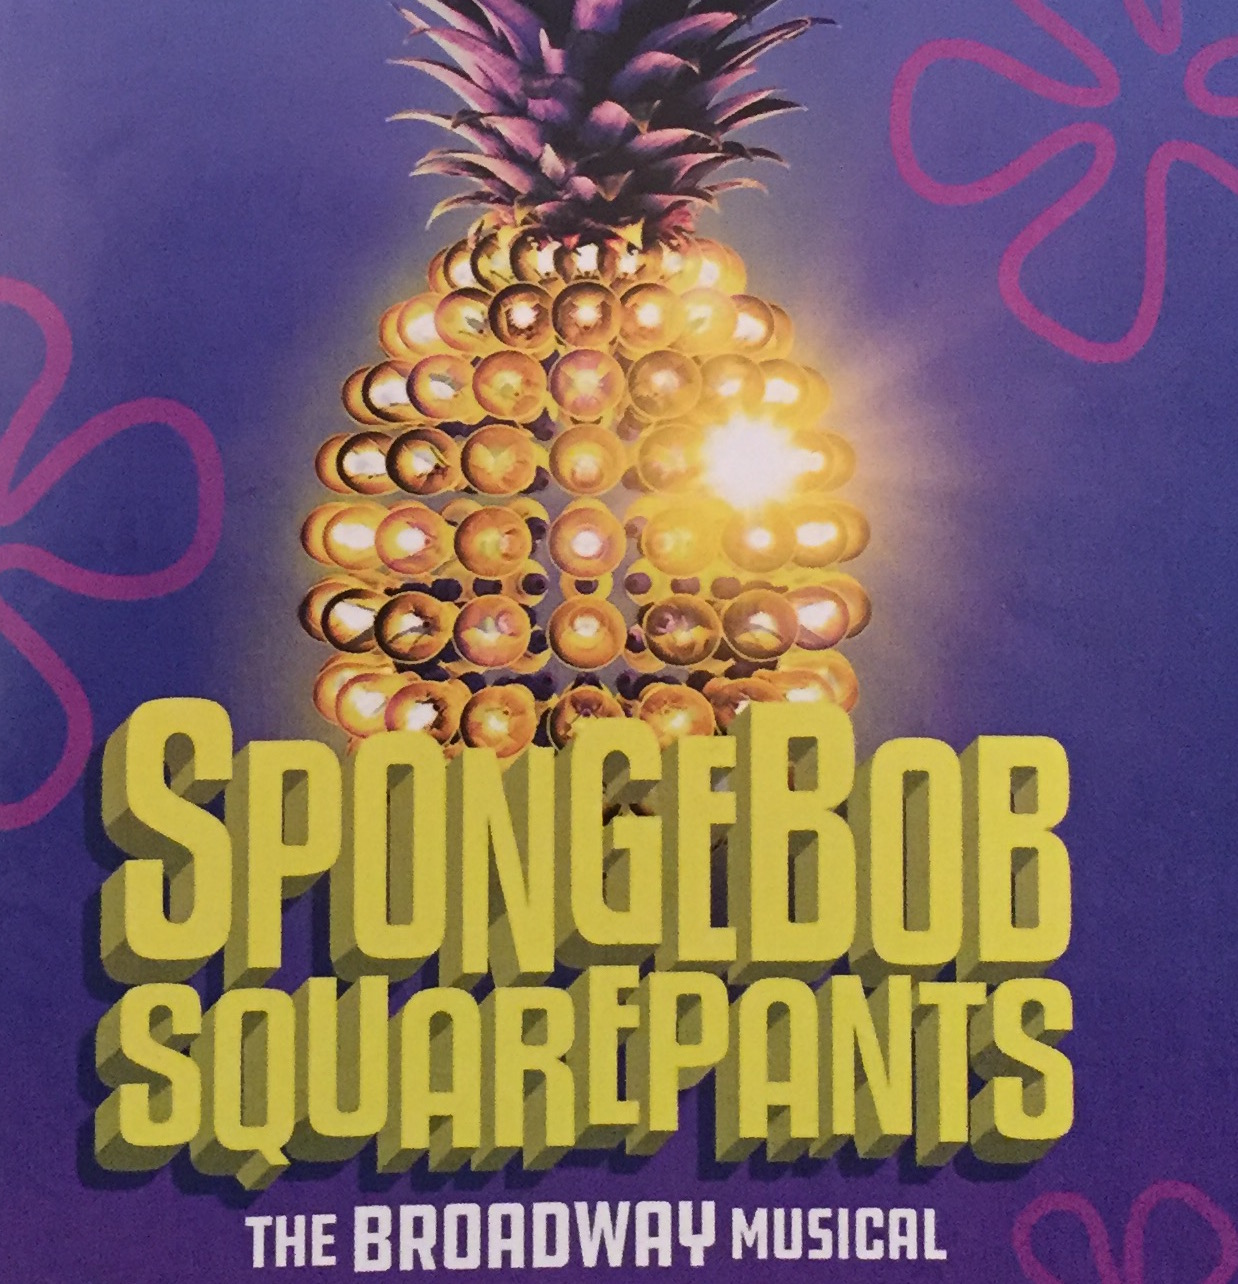 Spongebob Squarepants has taken a new form as Broadway's newest hit musical.